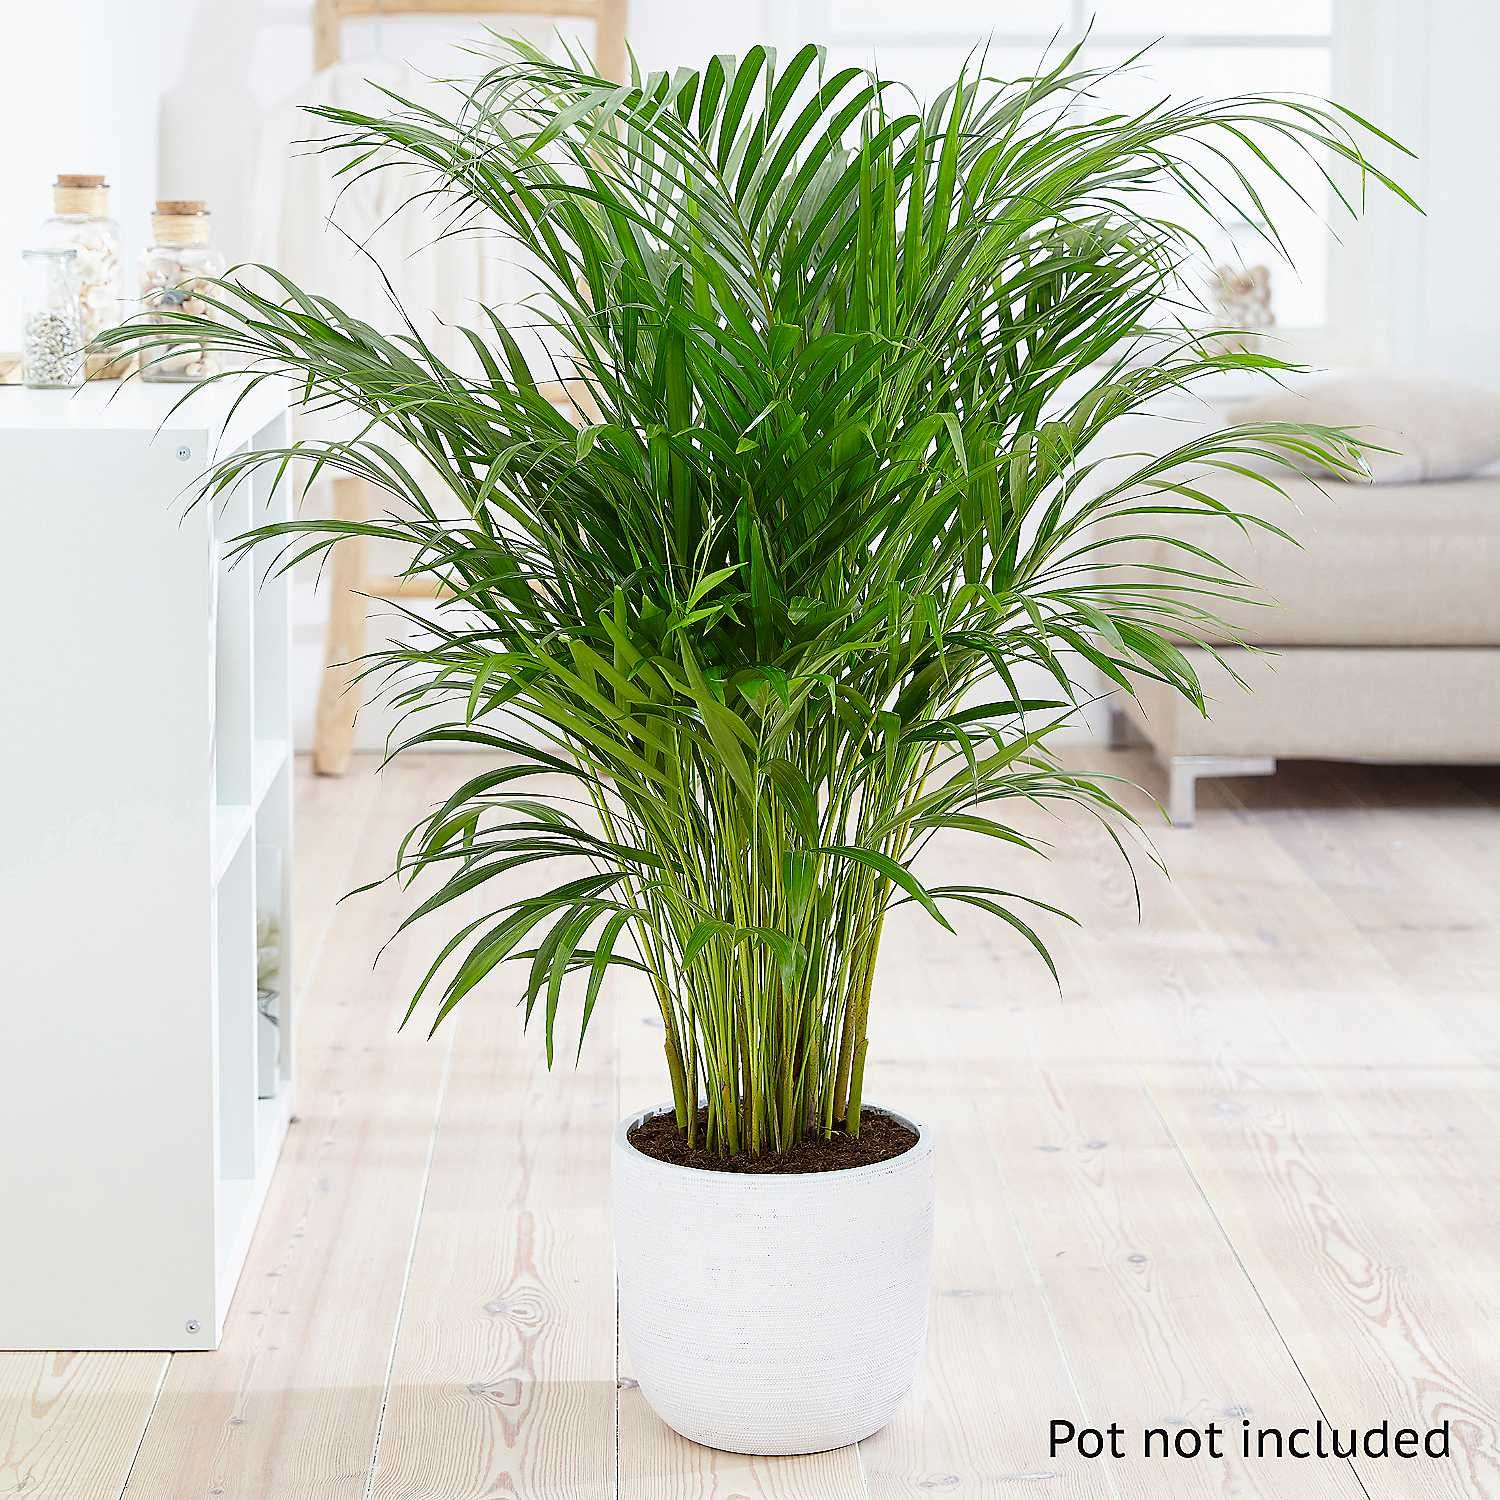 how to care for a palm plant outdoors